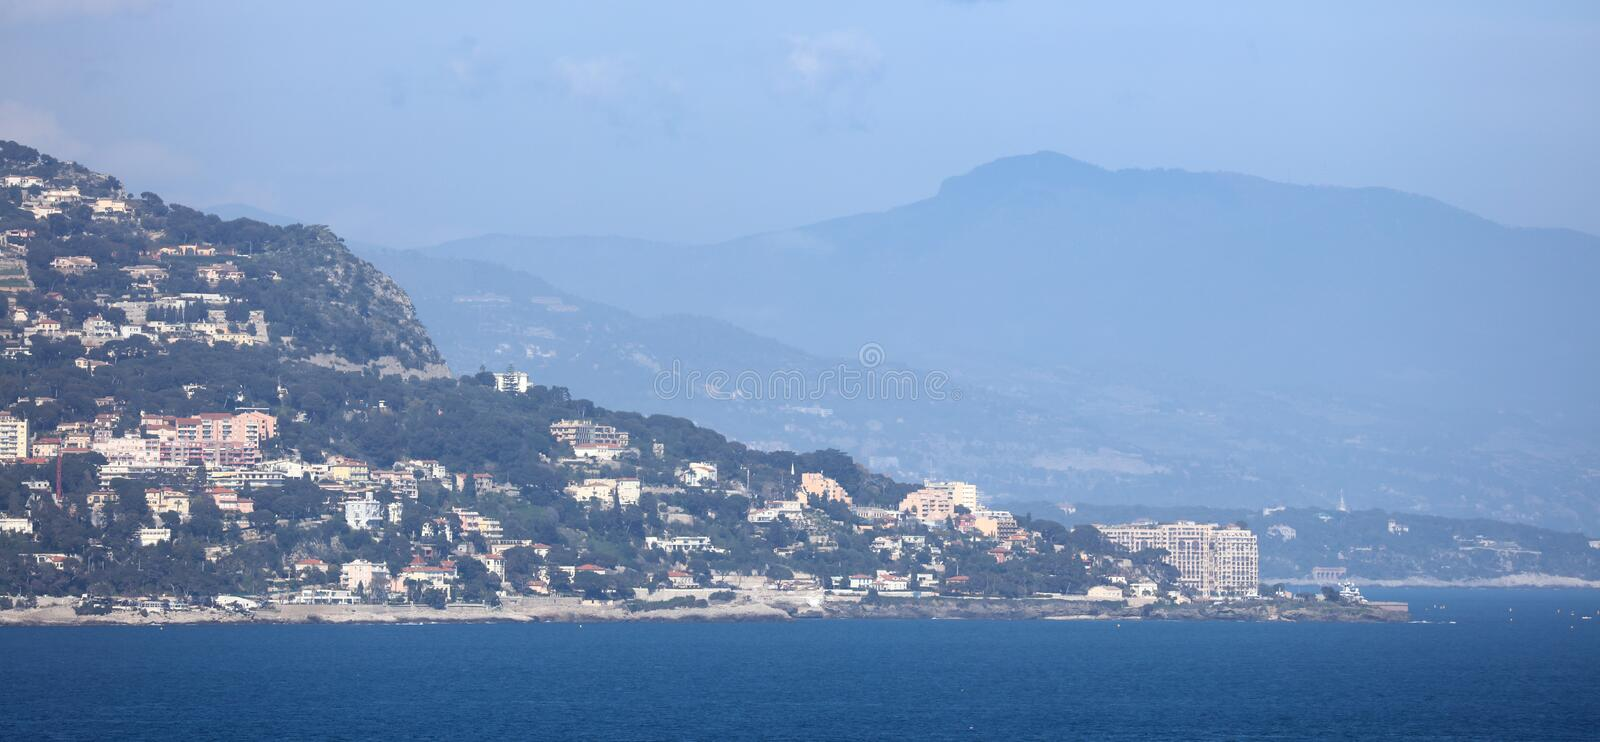 Nice French riviera, mediterranean coast, Eze, Saint-Tropez, Cannes and Monaco. Blue water and luxury yachts. French riviera, Côte d`Azur, mediterranean stock photography